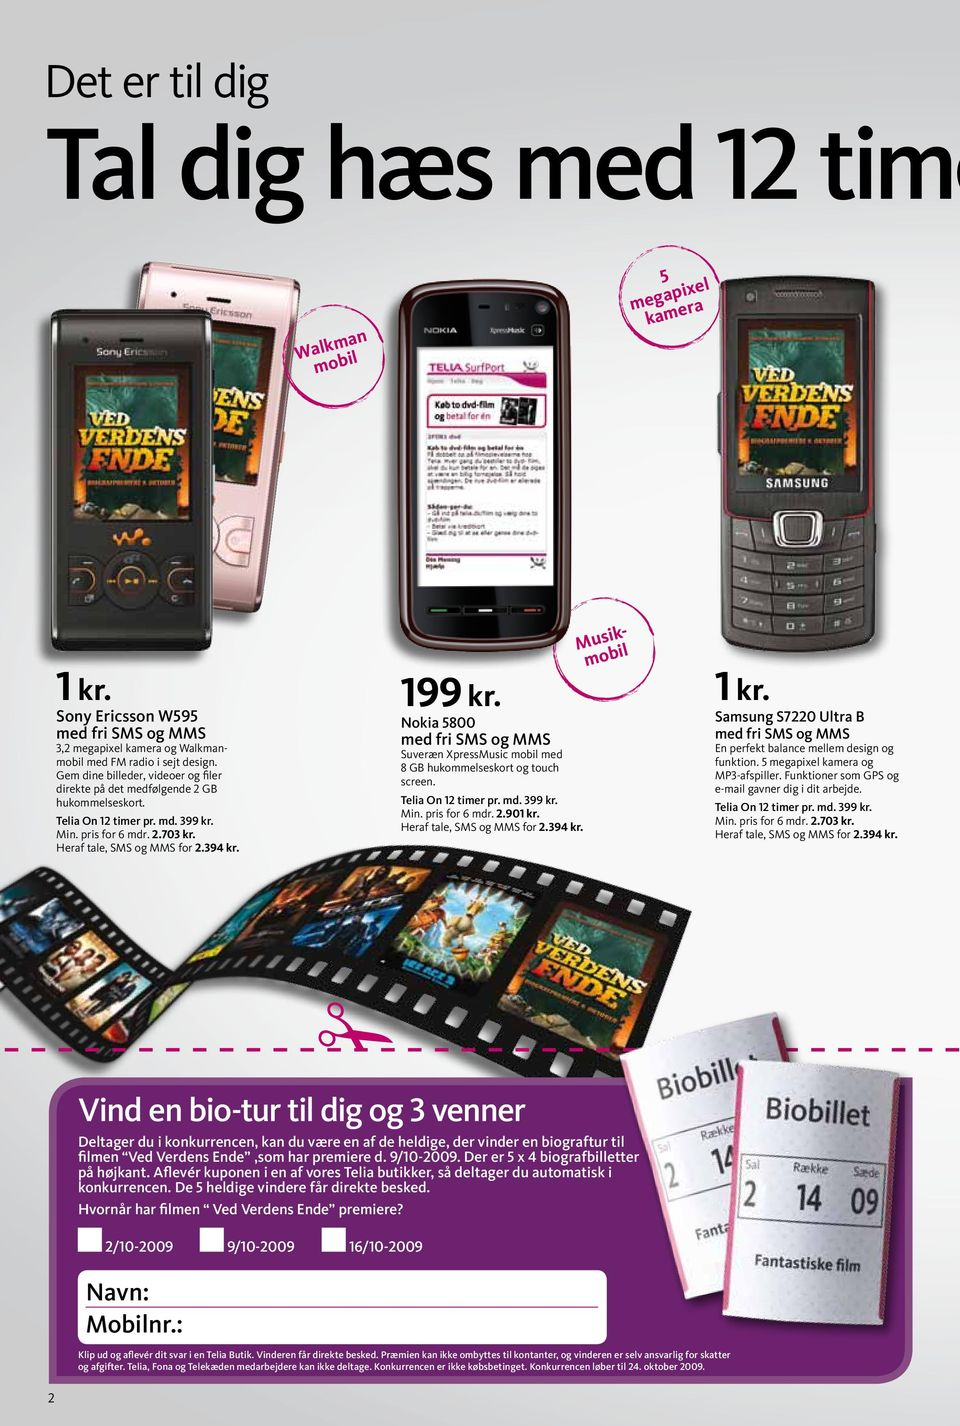 Nokia 5800 med fri SMS og MMS Suveræn XpressMusic mobil med 8 GB hukommelseskort og touch screen. Telia On 12 timer pr. md. 399 kr. Min. pris for 6 mdr. 2.90 Heraf tale, SMS og MMS for 2.394 kr.